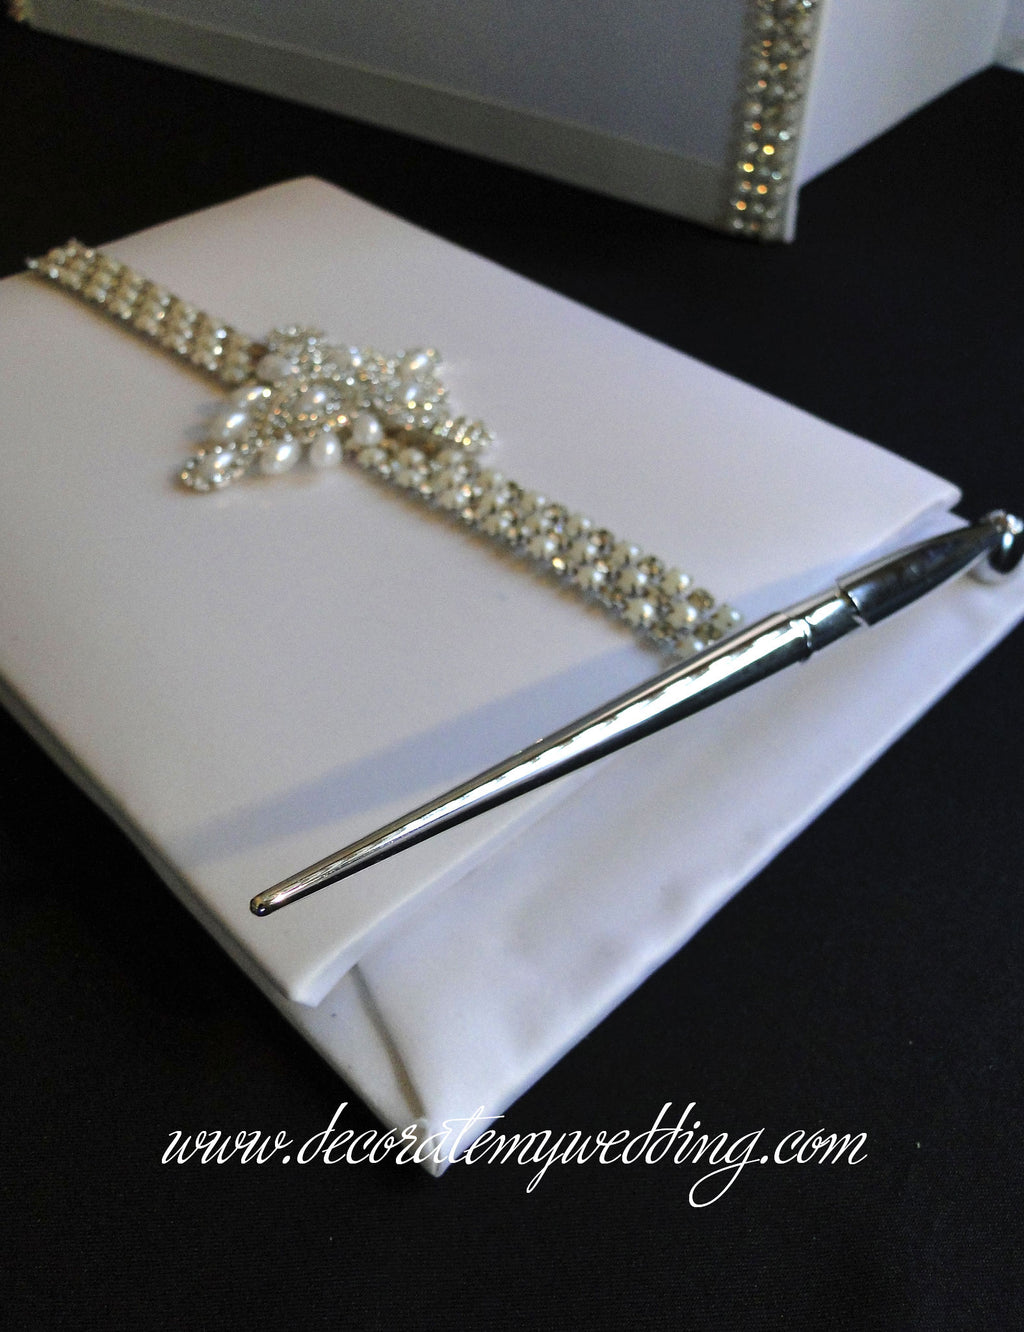 A pearl and rhinestone accented wedding guest book.